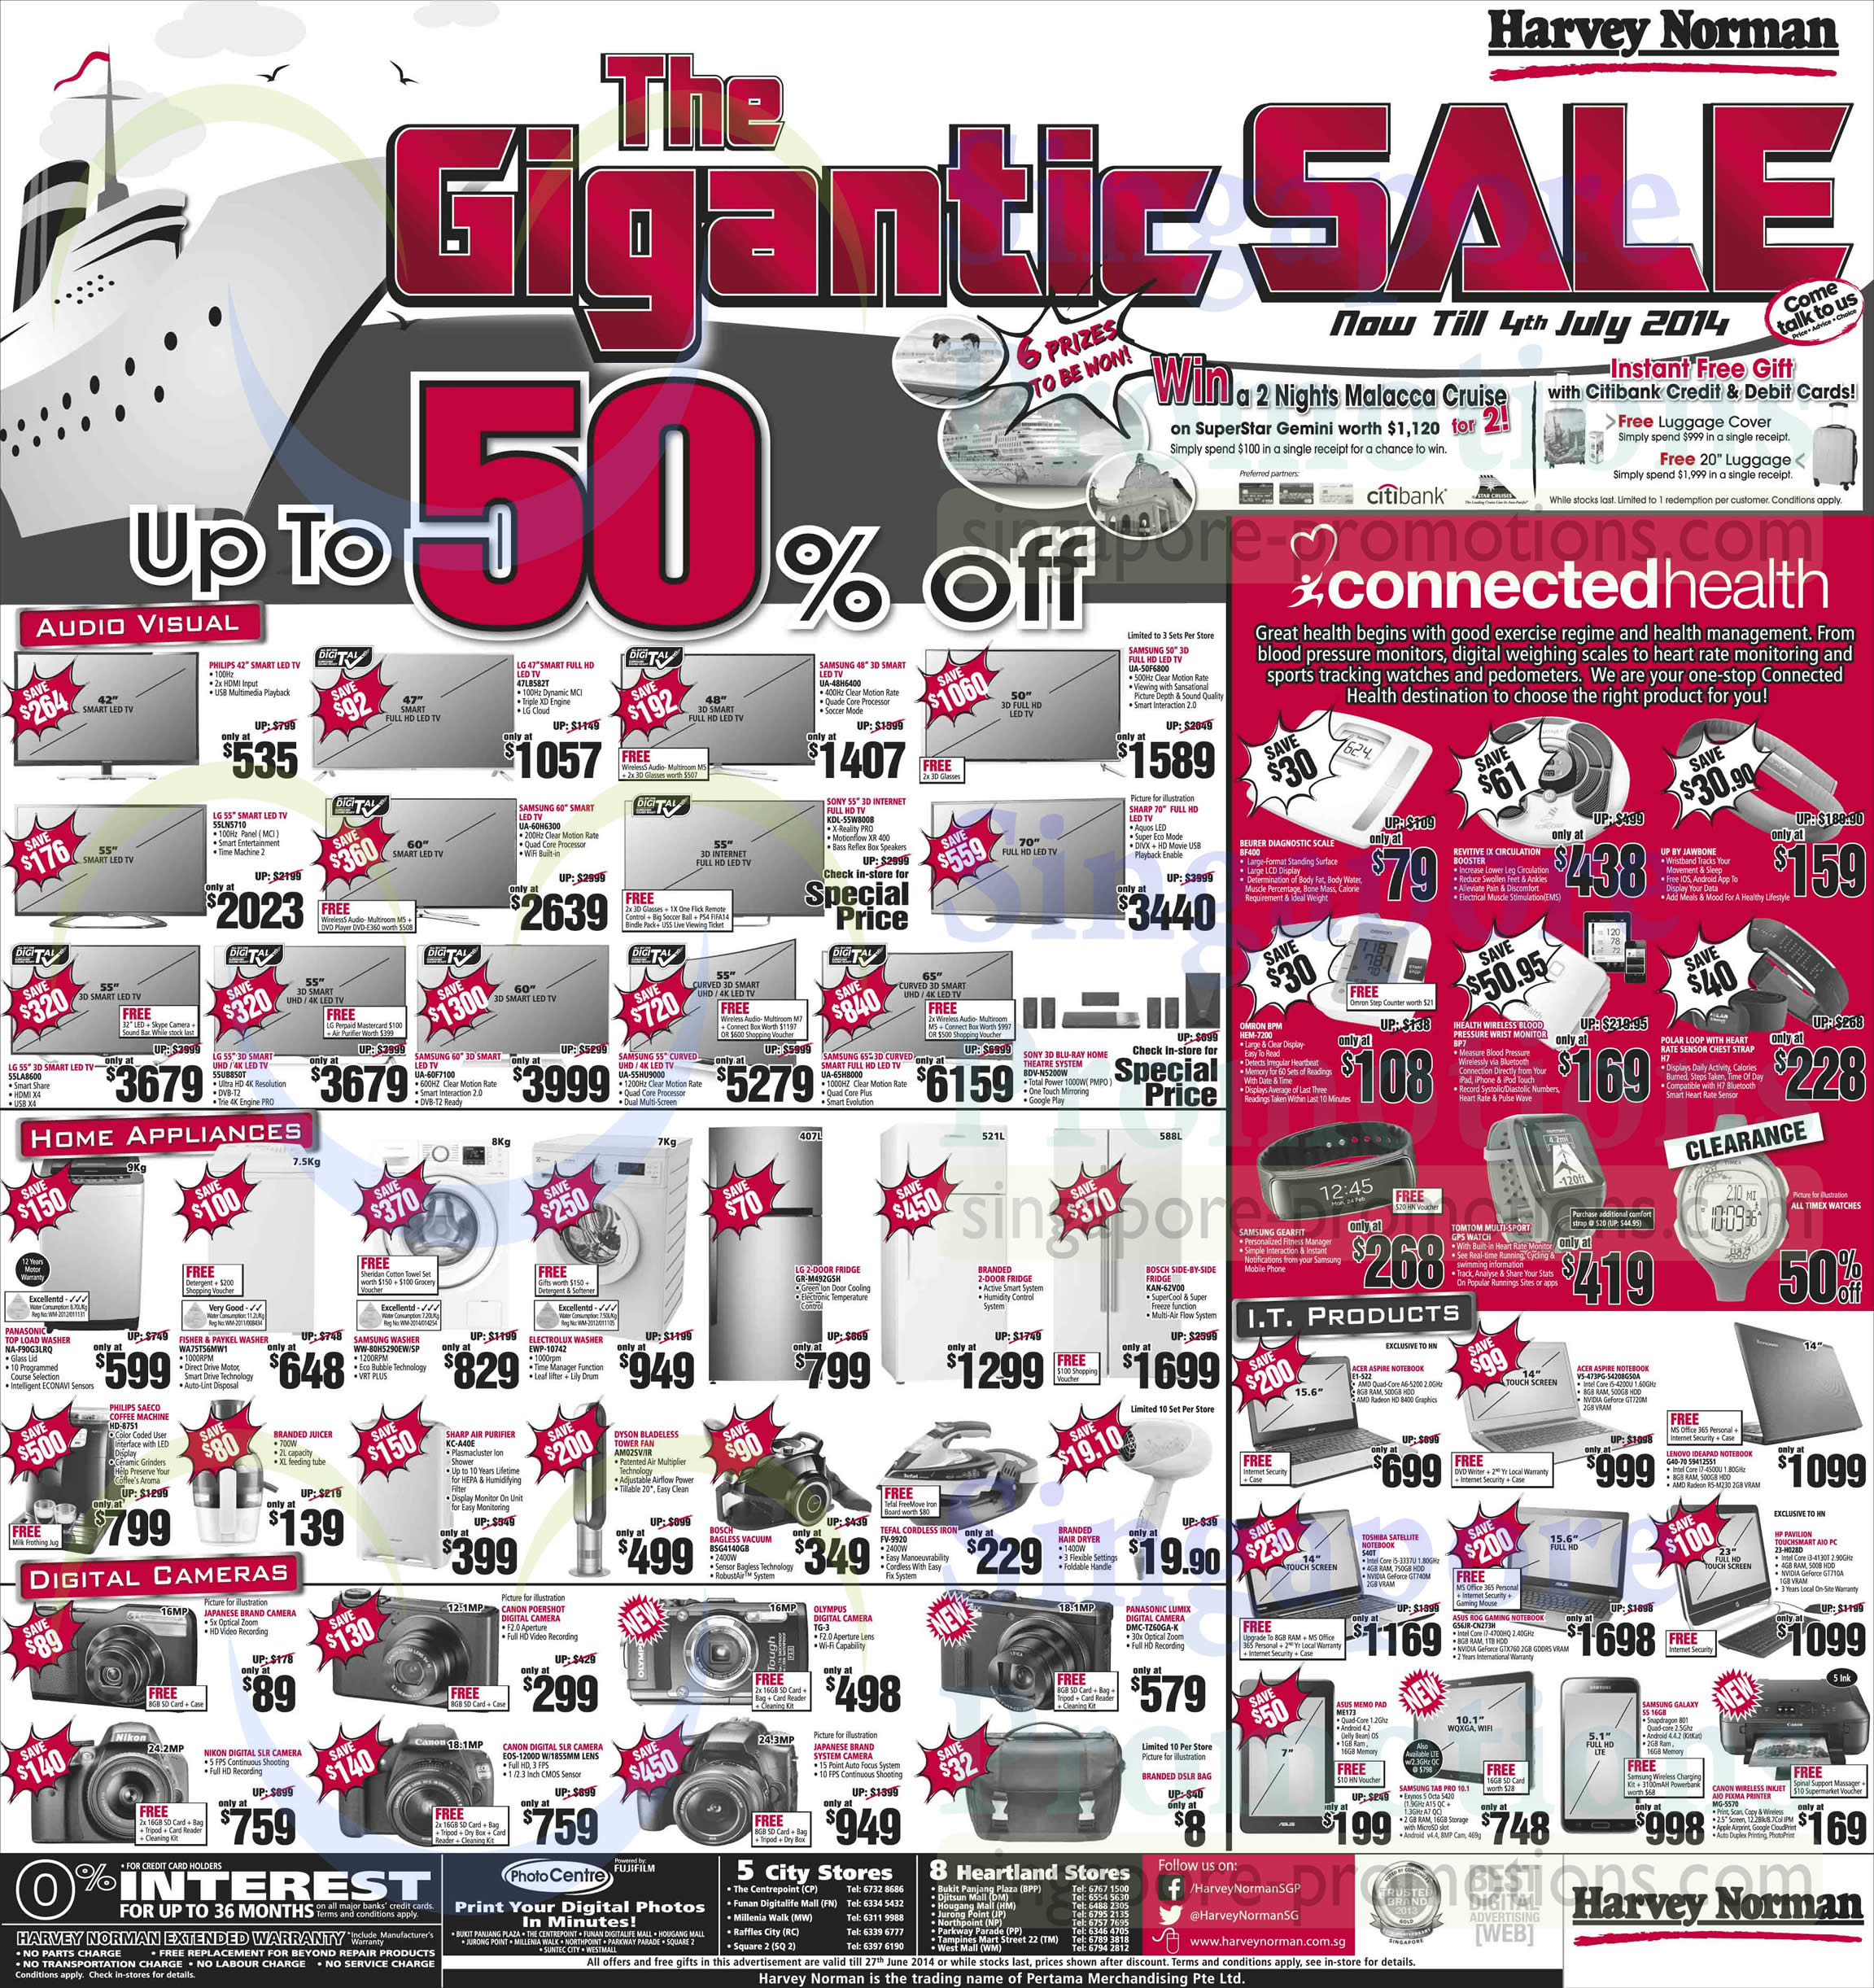 Featured image for Harvey Norman Digital Cameras, Furniture, Notebooks & Appliances Offers 21 - 27 Jun 2014